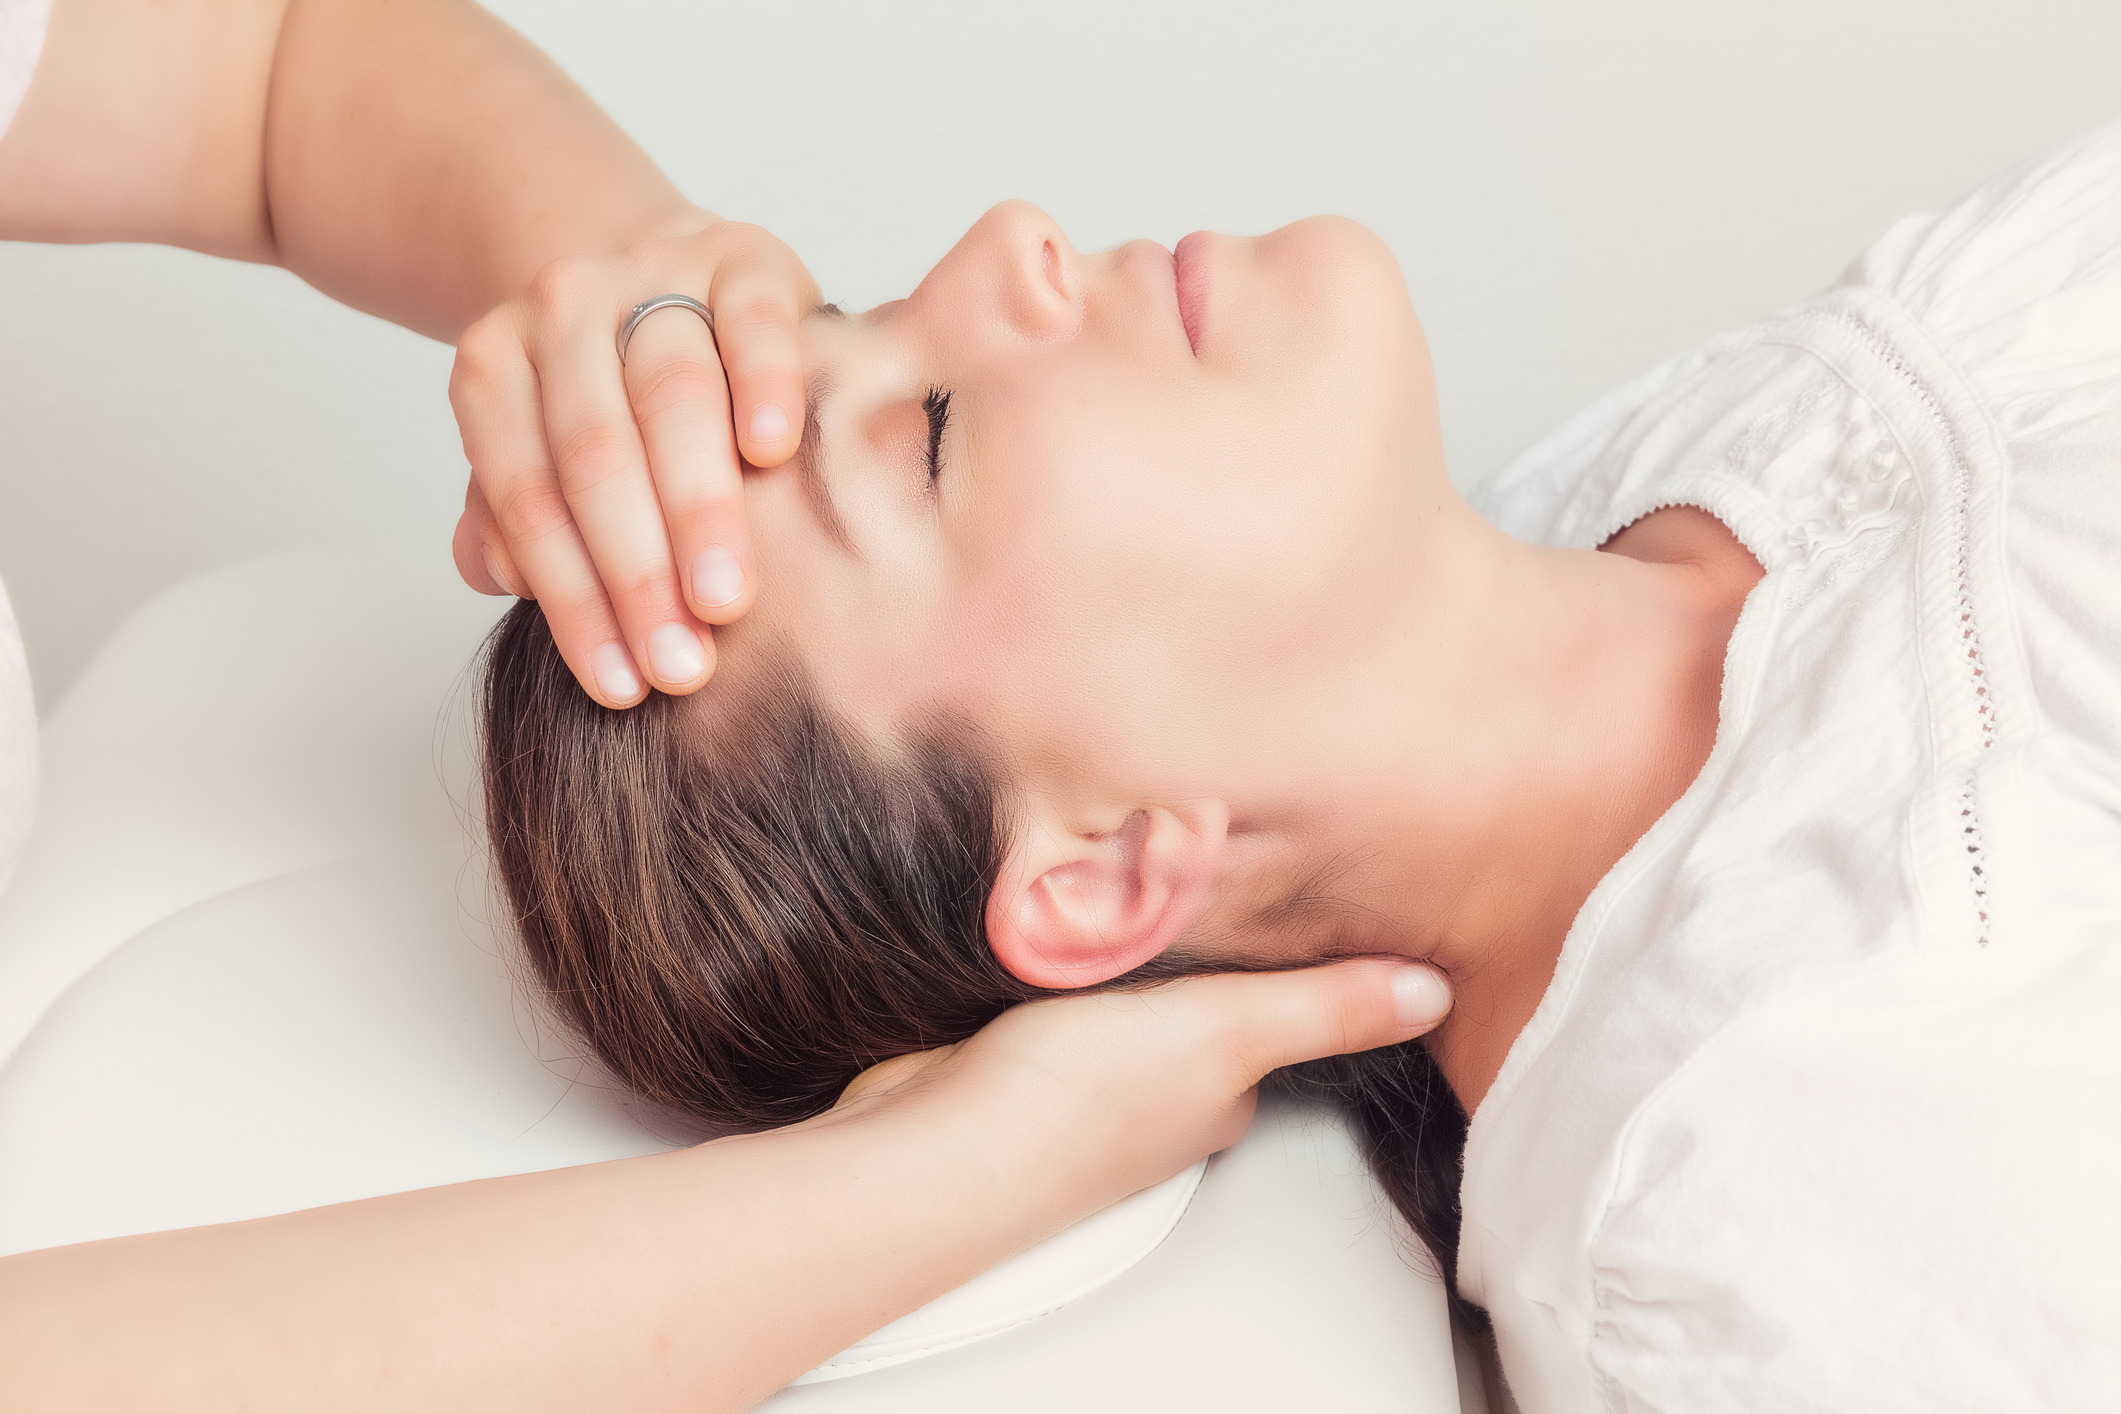 Cranial Release craniosacral therapy - Ithaca, NY - Dr. jaclyn borza maher